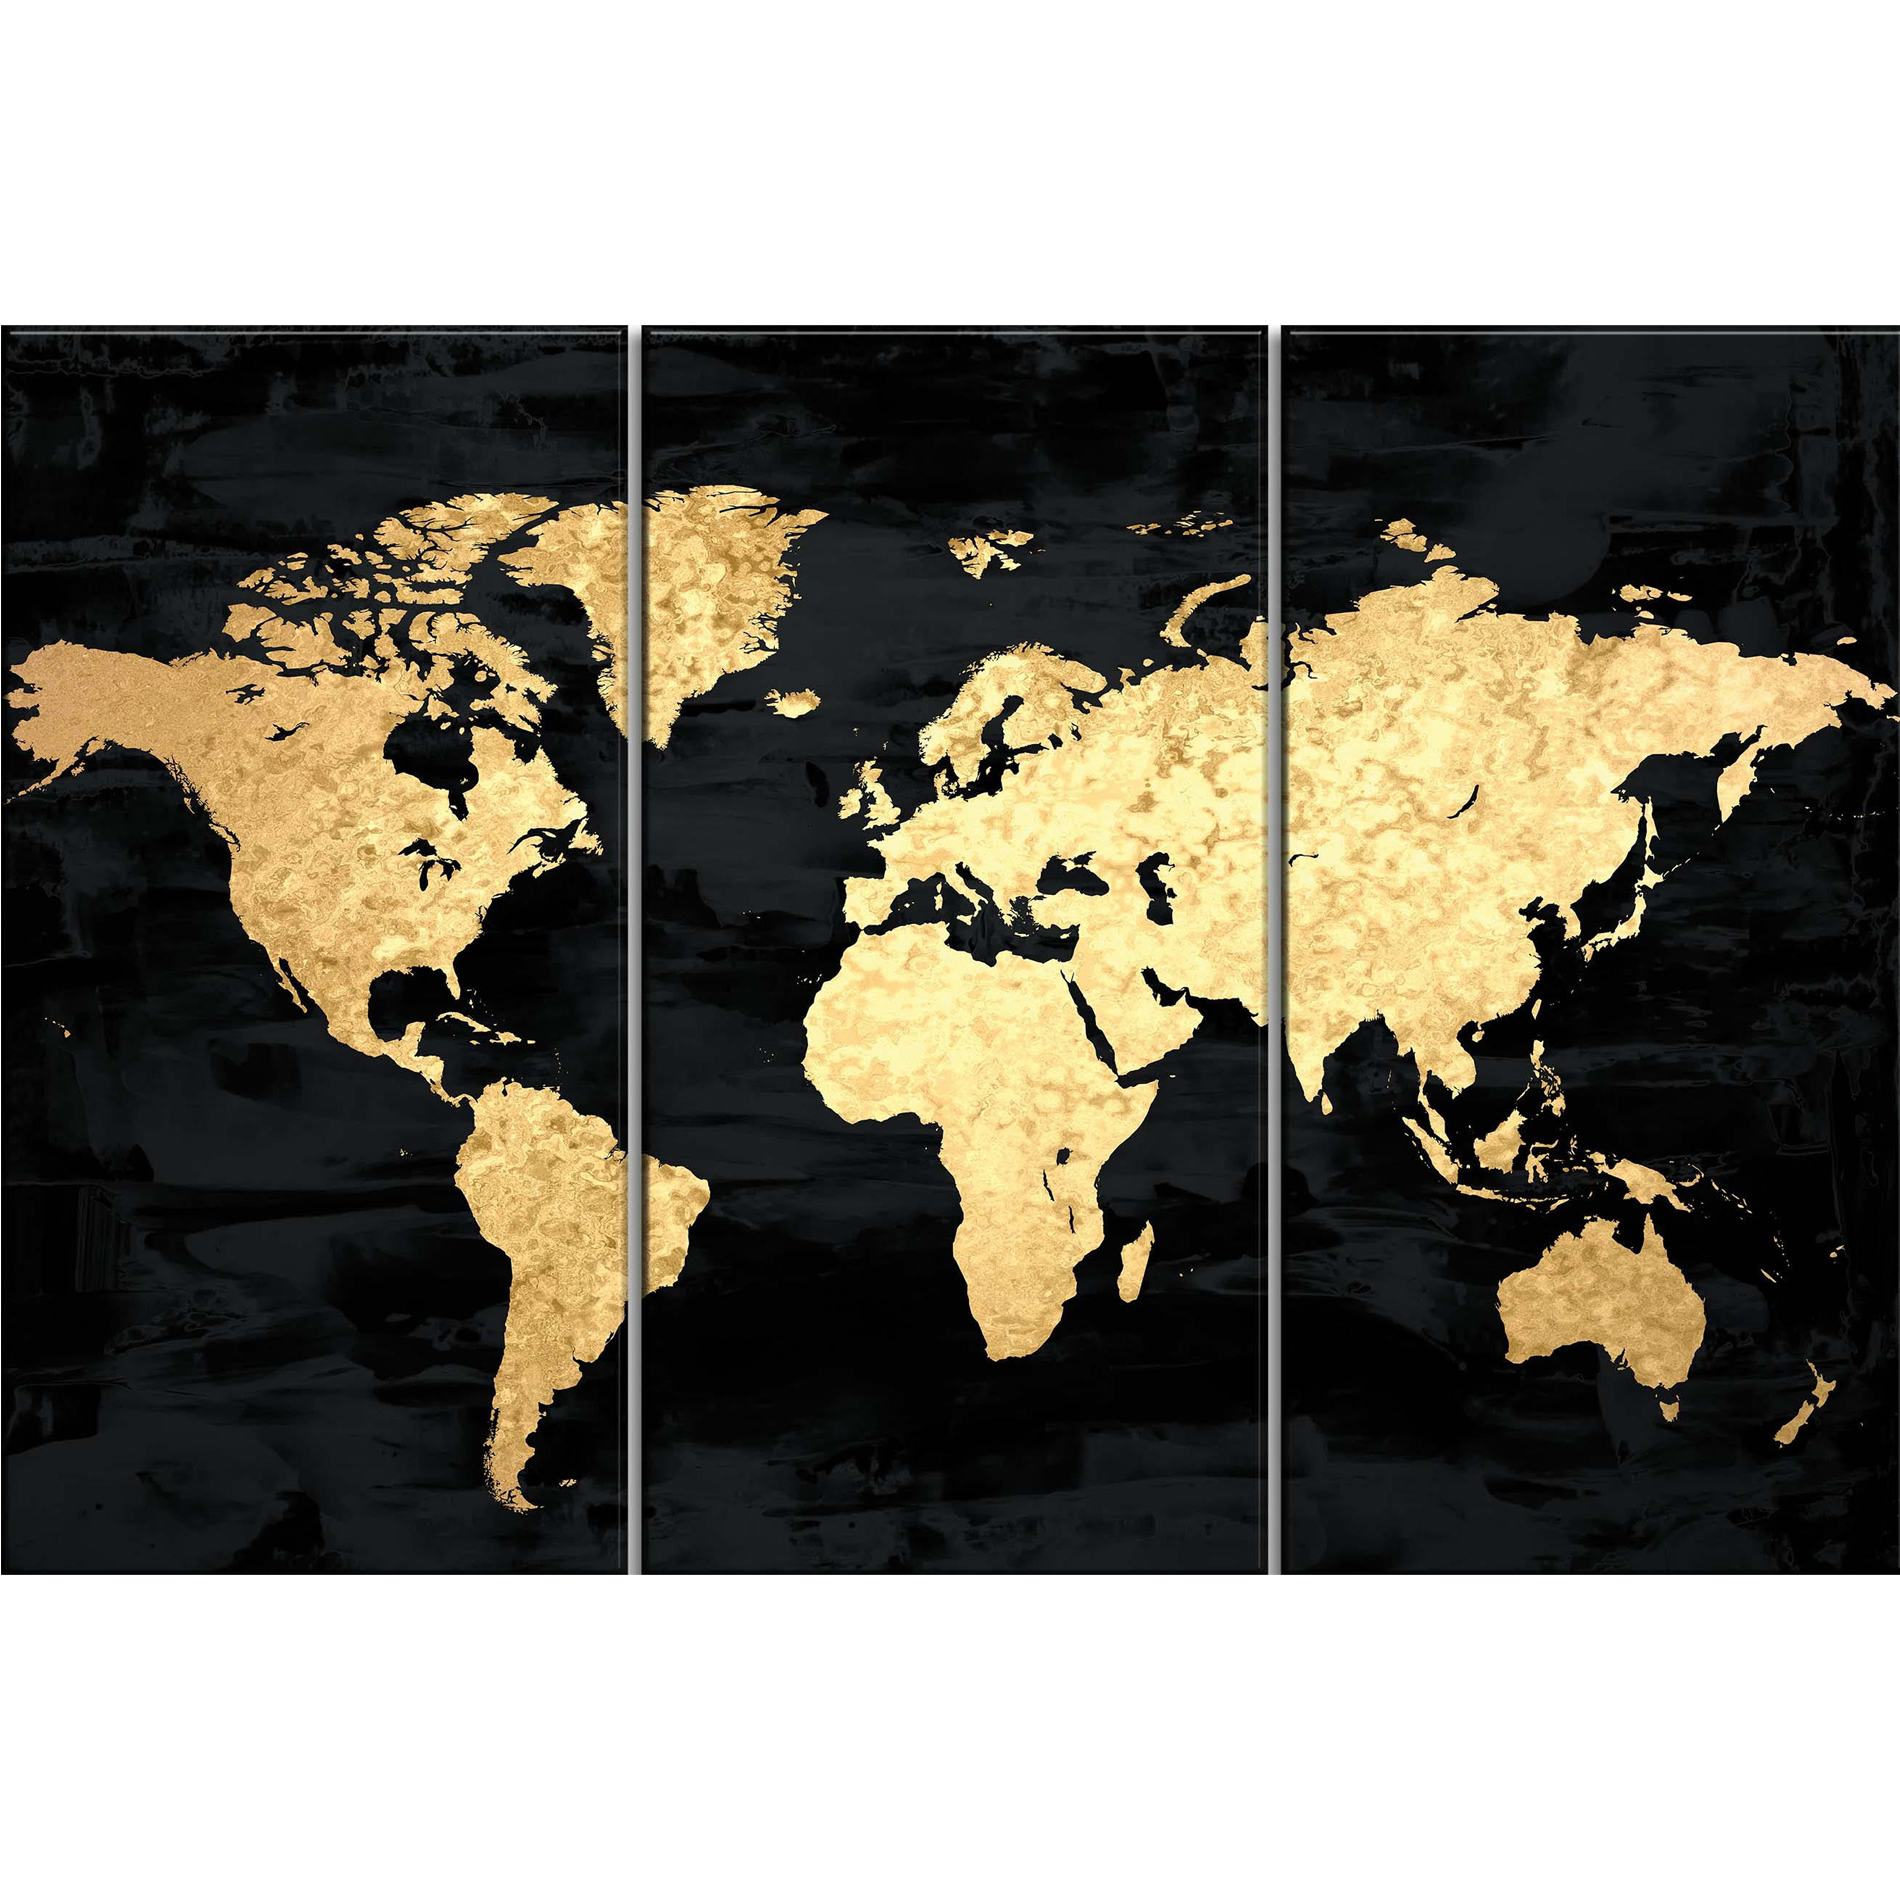 Kmart black gold map art 20 wall decorart and paint kmart black gold map art 20 gumiabroncs Choice Image